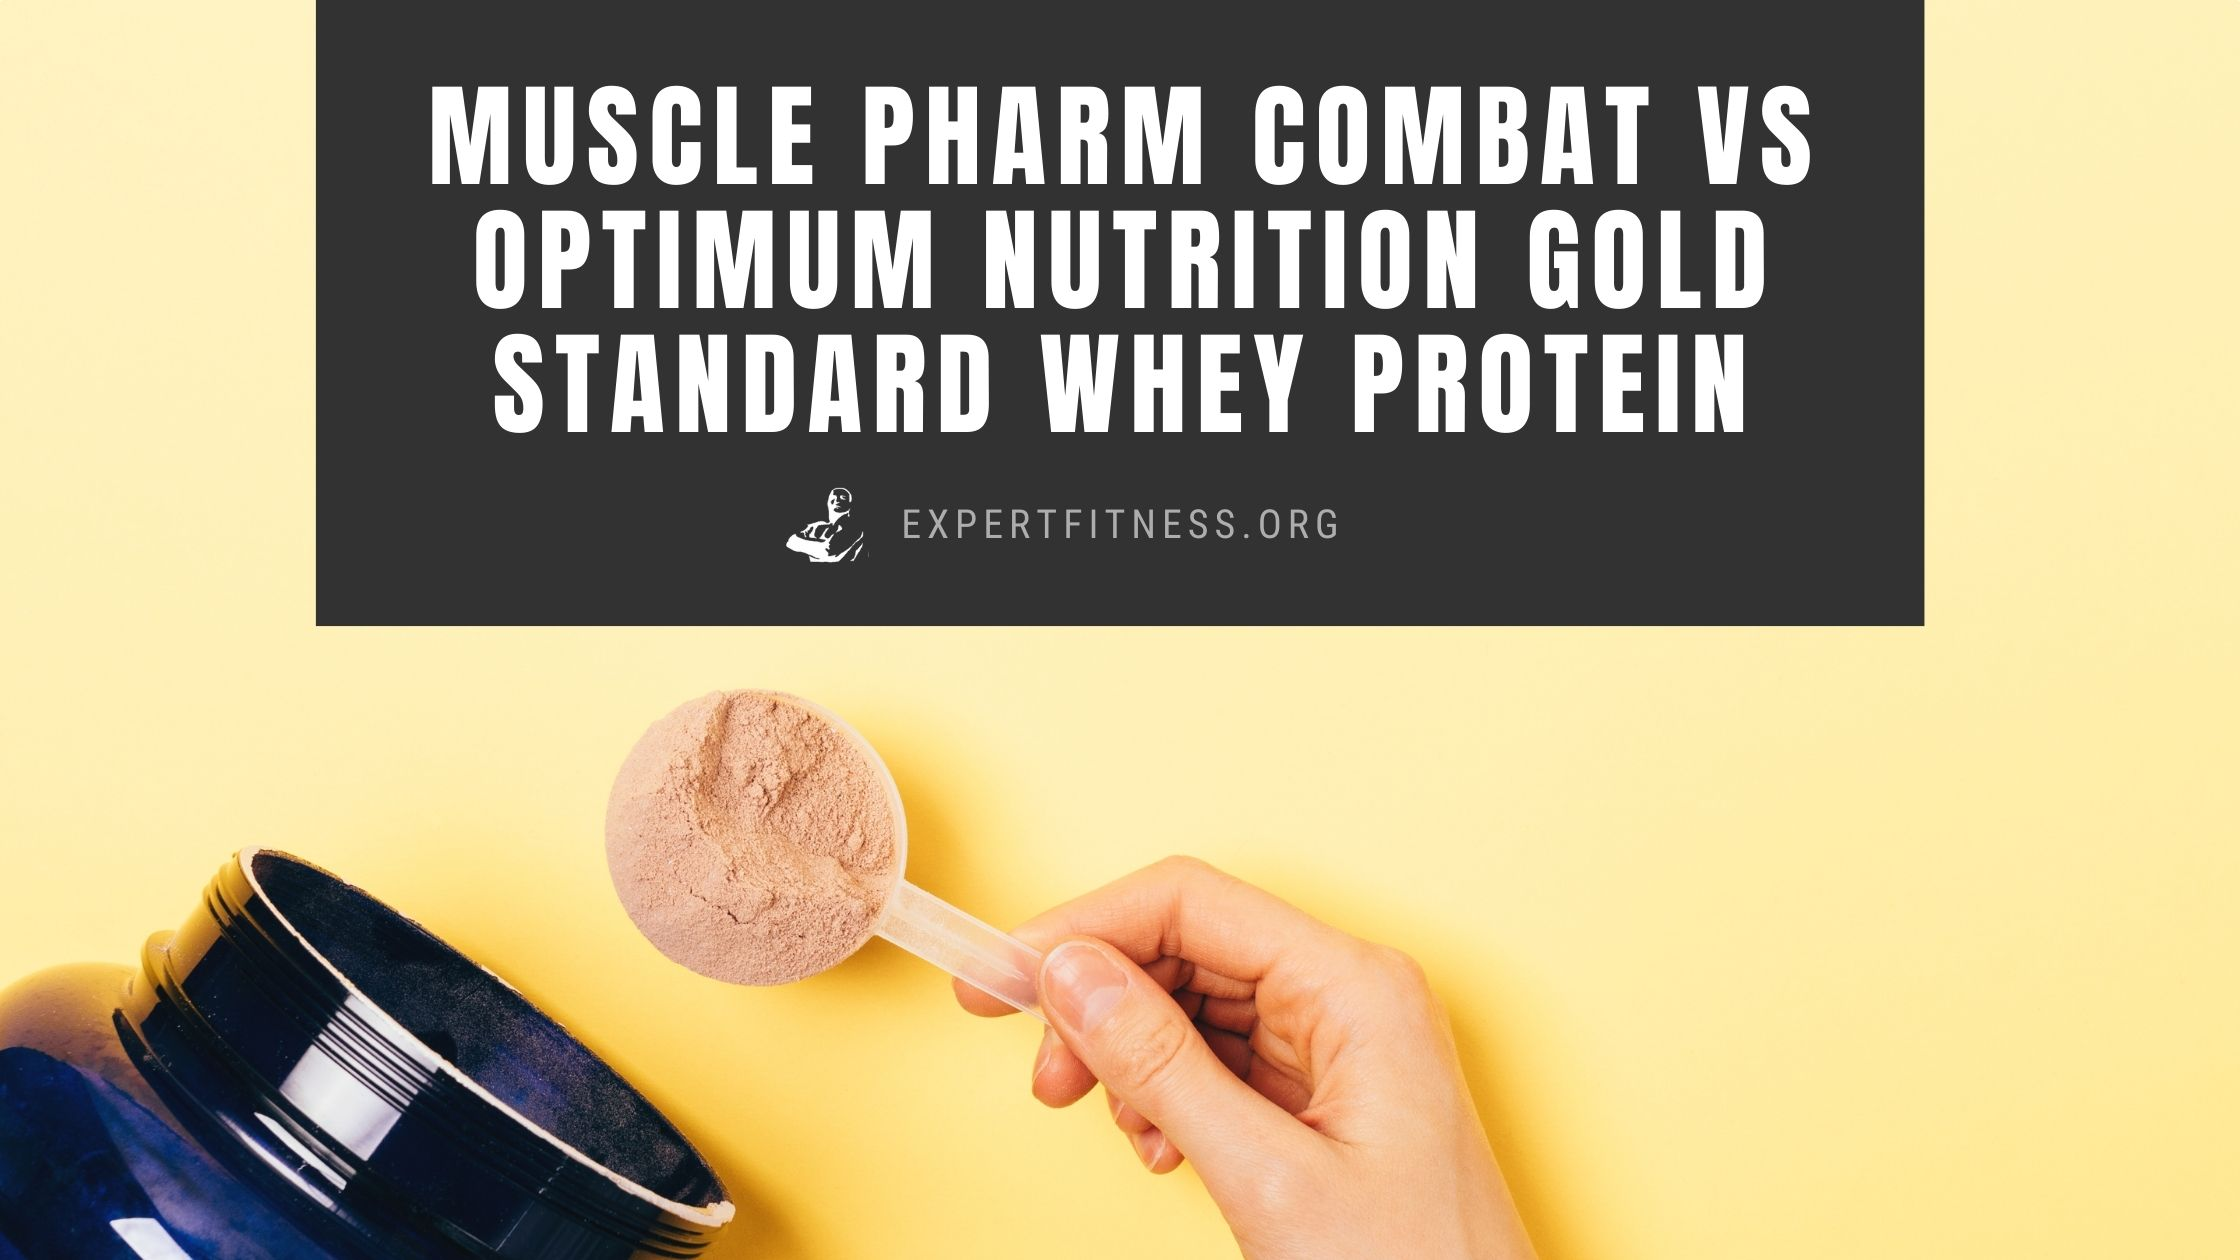 EF-Muscle-pharm-combat-vs-optimum-nutrition-gold-standard-whey-protein